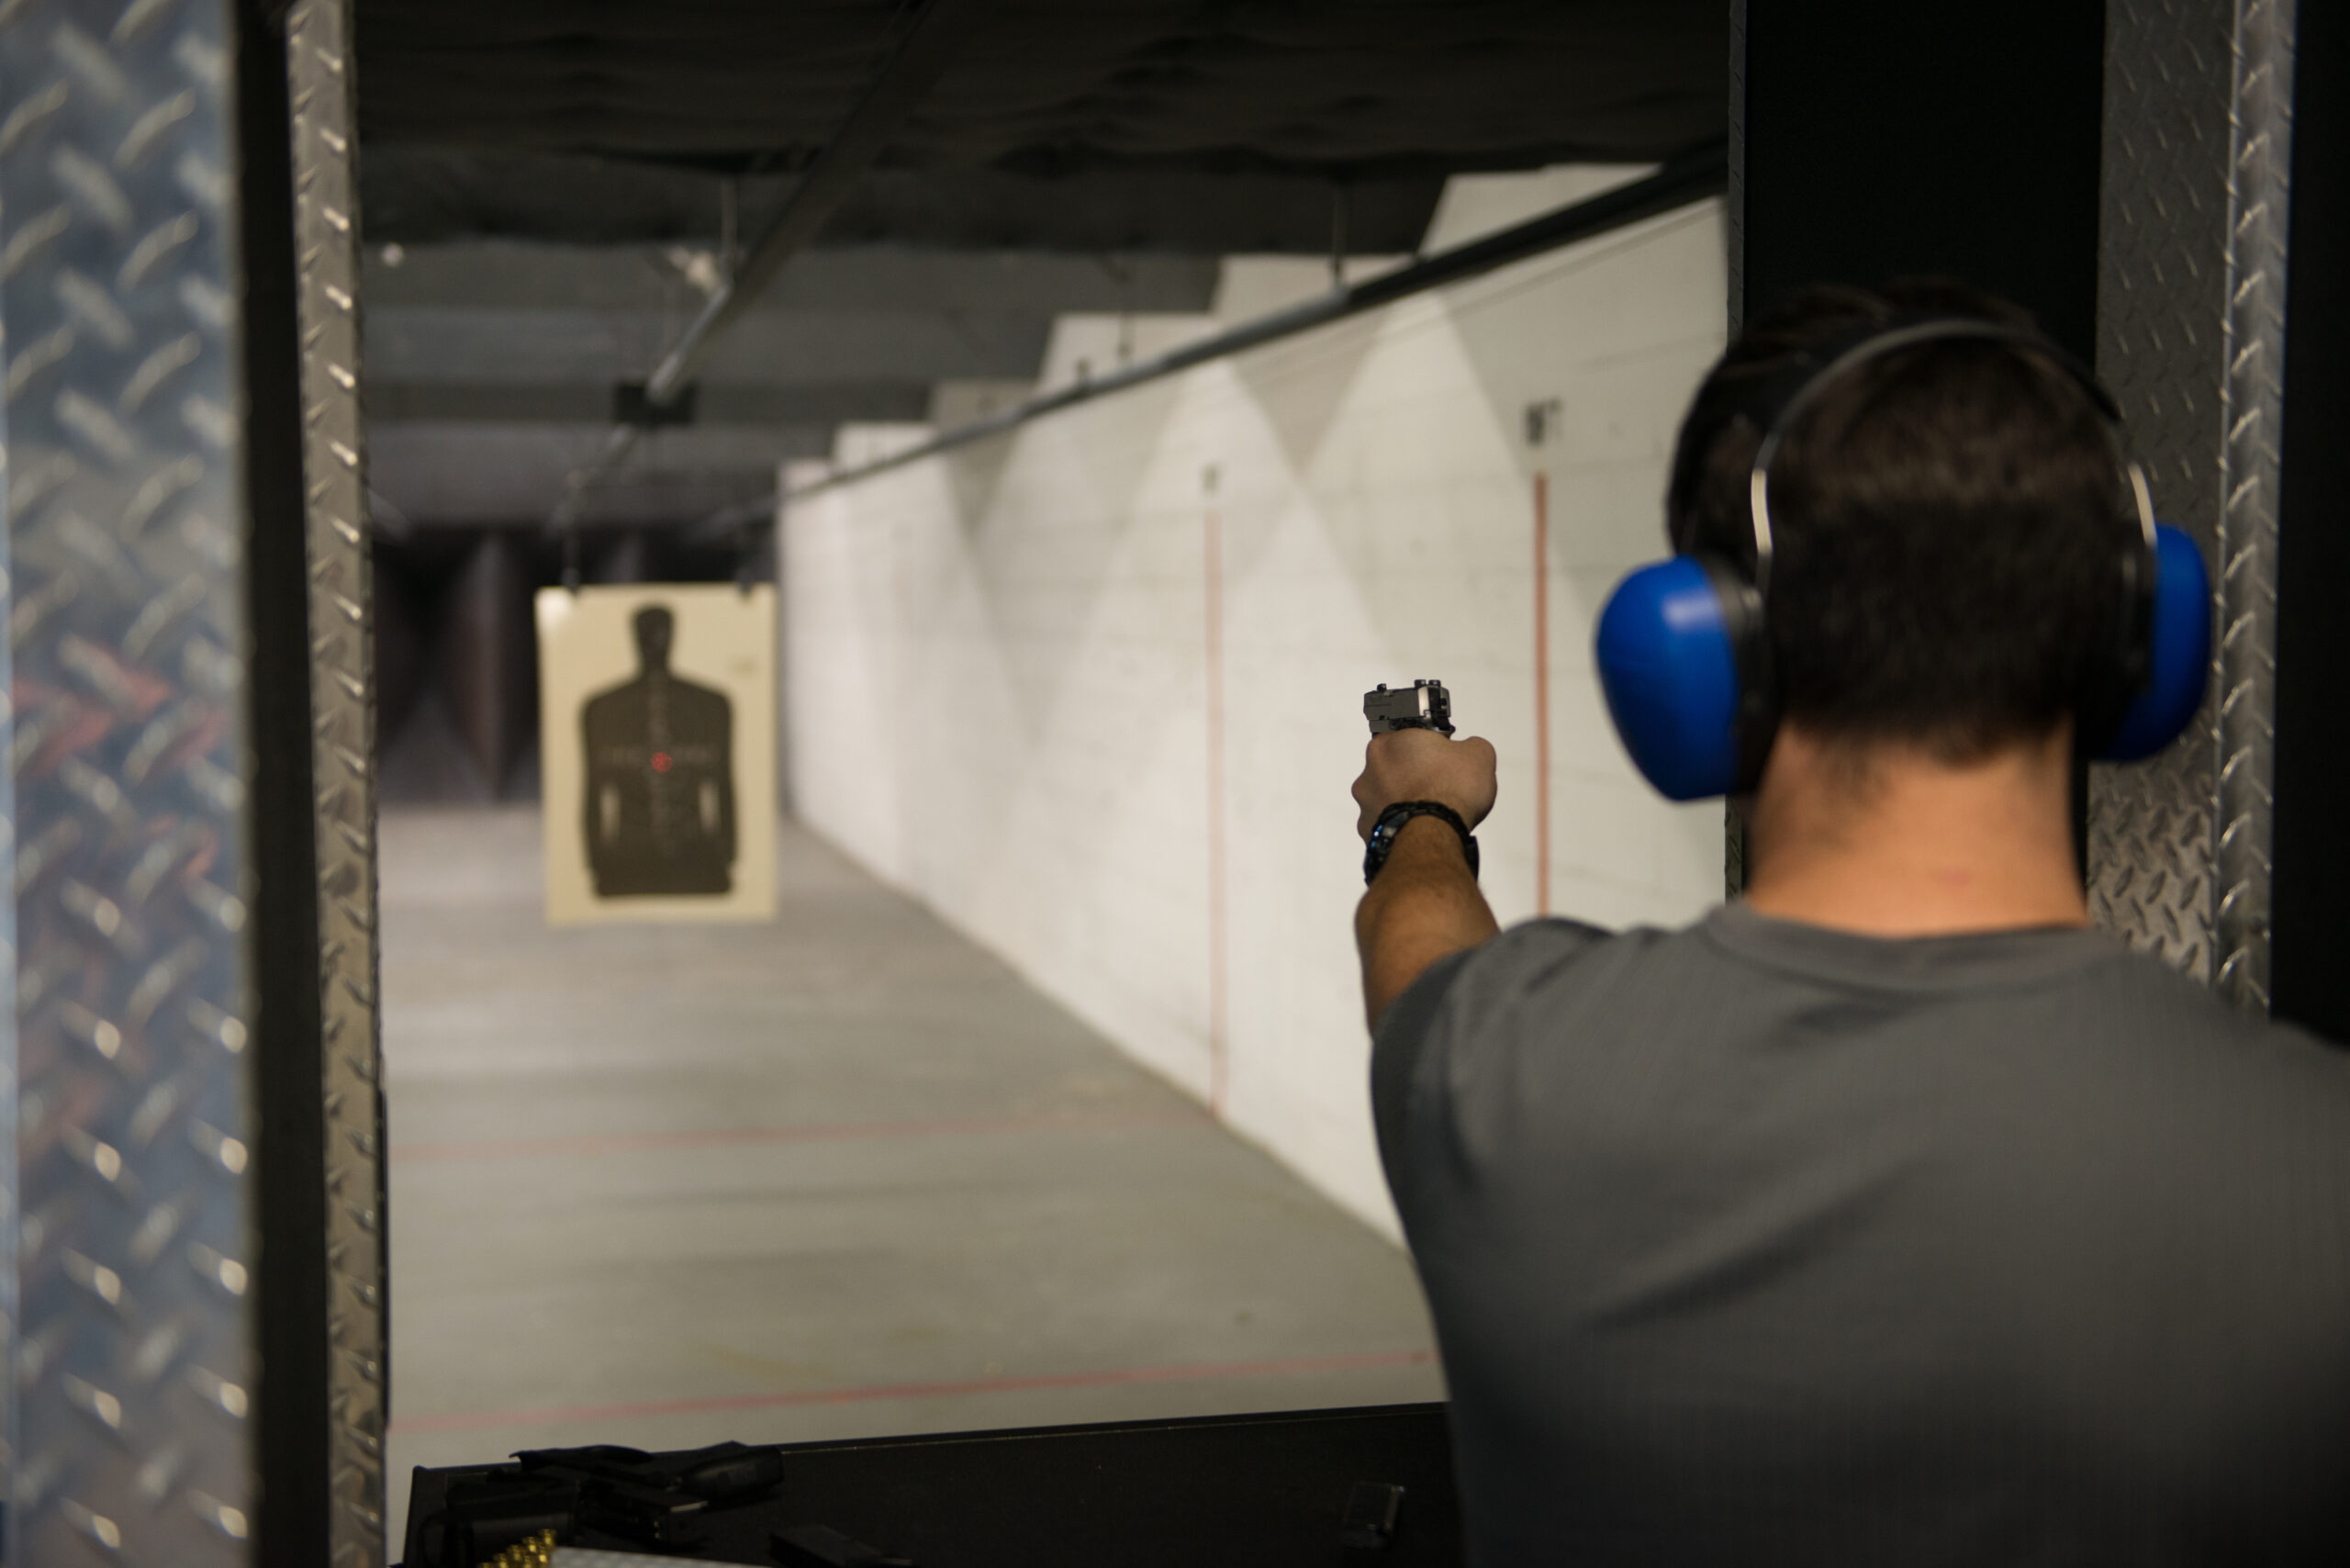 Gun Training Classes